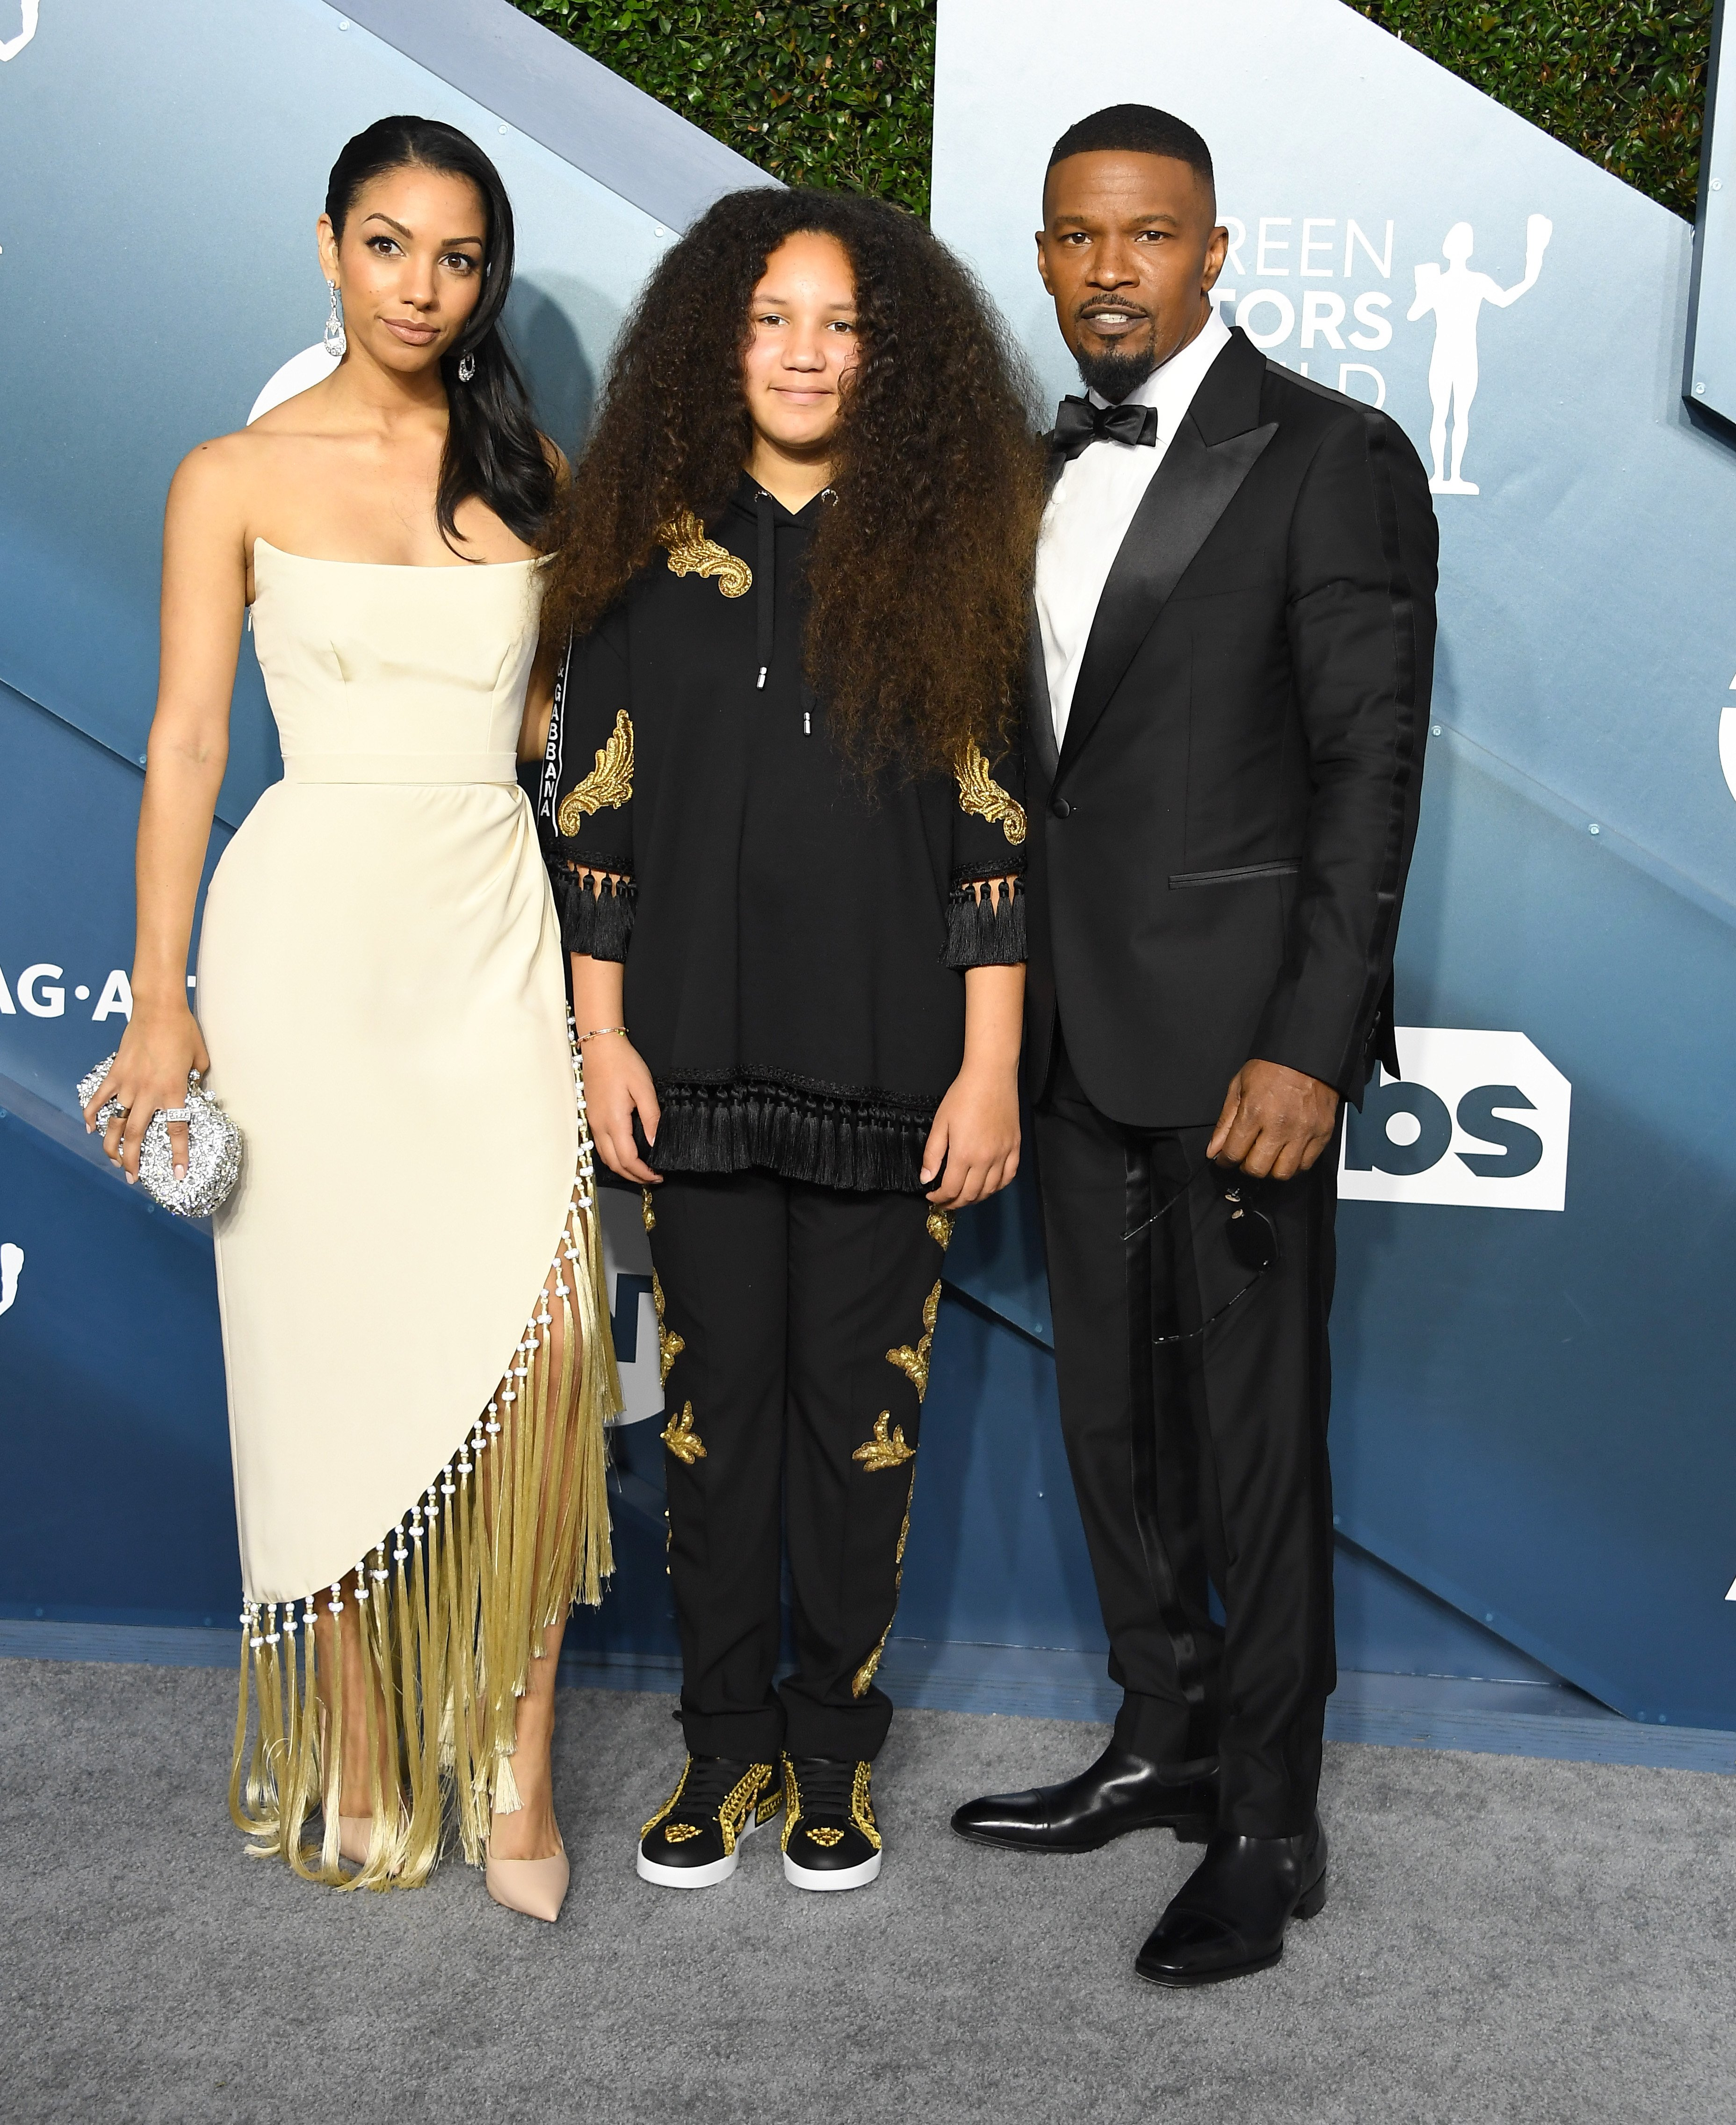 Corinne Foxx, Annalise Bishop and Jamie Foxx arrives at the 26th Annual Screen ActorsGuild Awards at The Shrine Auditorium on January 19, 2020 in Los Angeles, California. | Photo: GettyImages